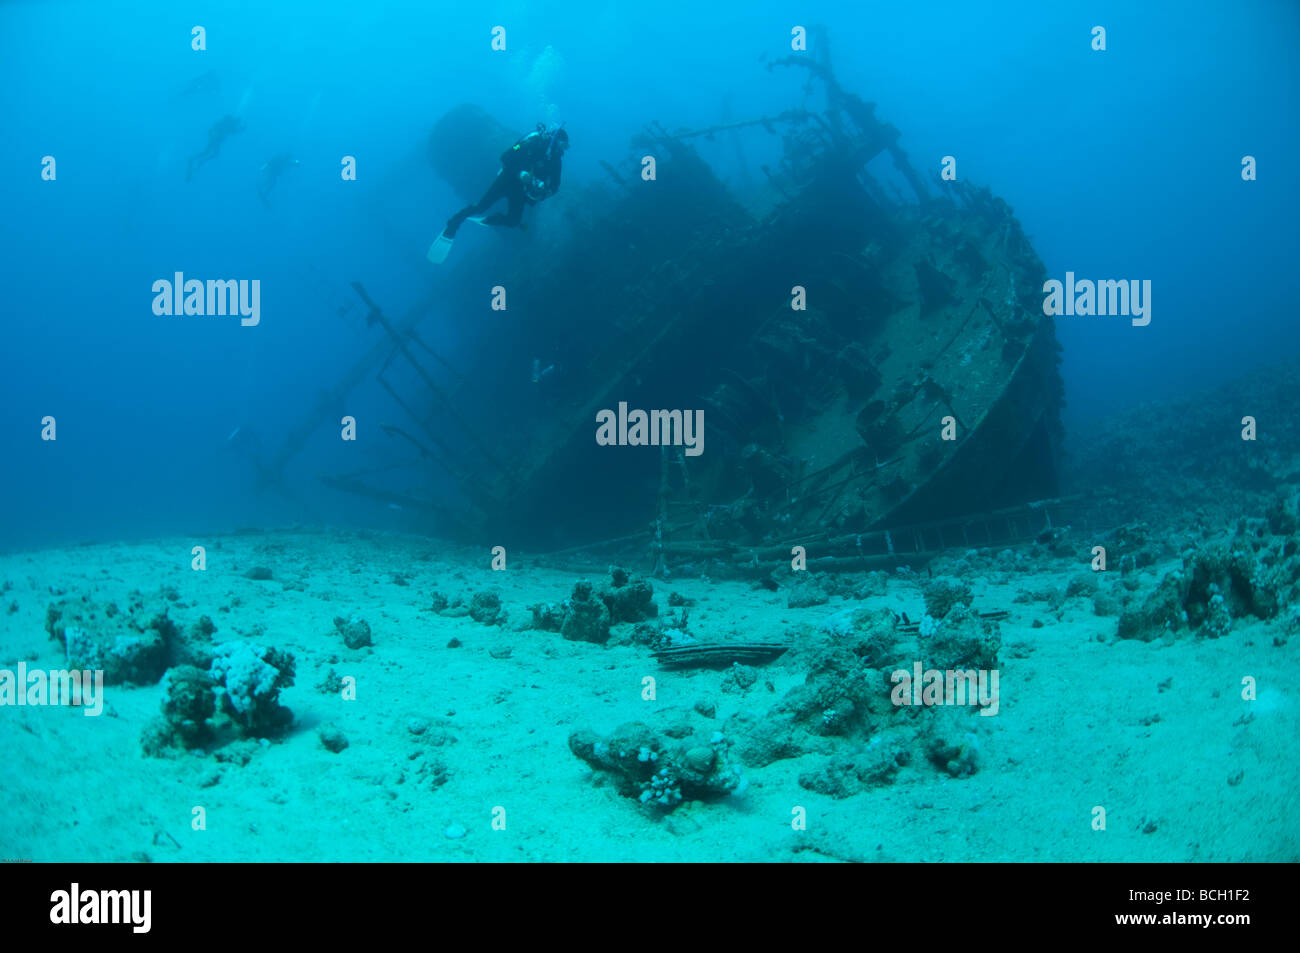 View of the stern superstucture of the Giannis D. a popular scuba diving shipwreck in the Red Sea near Egypt. - Stock Image